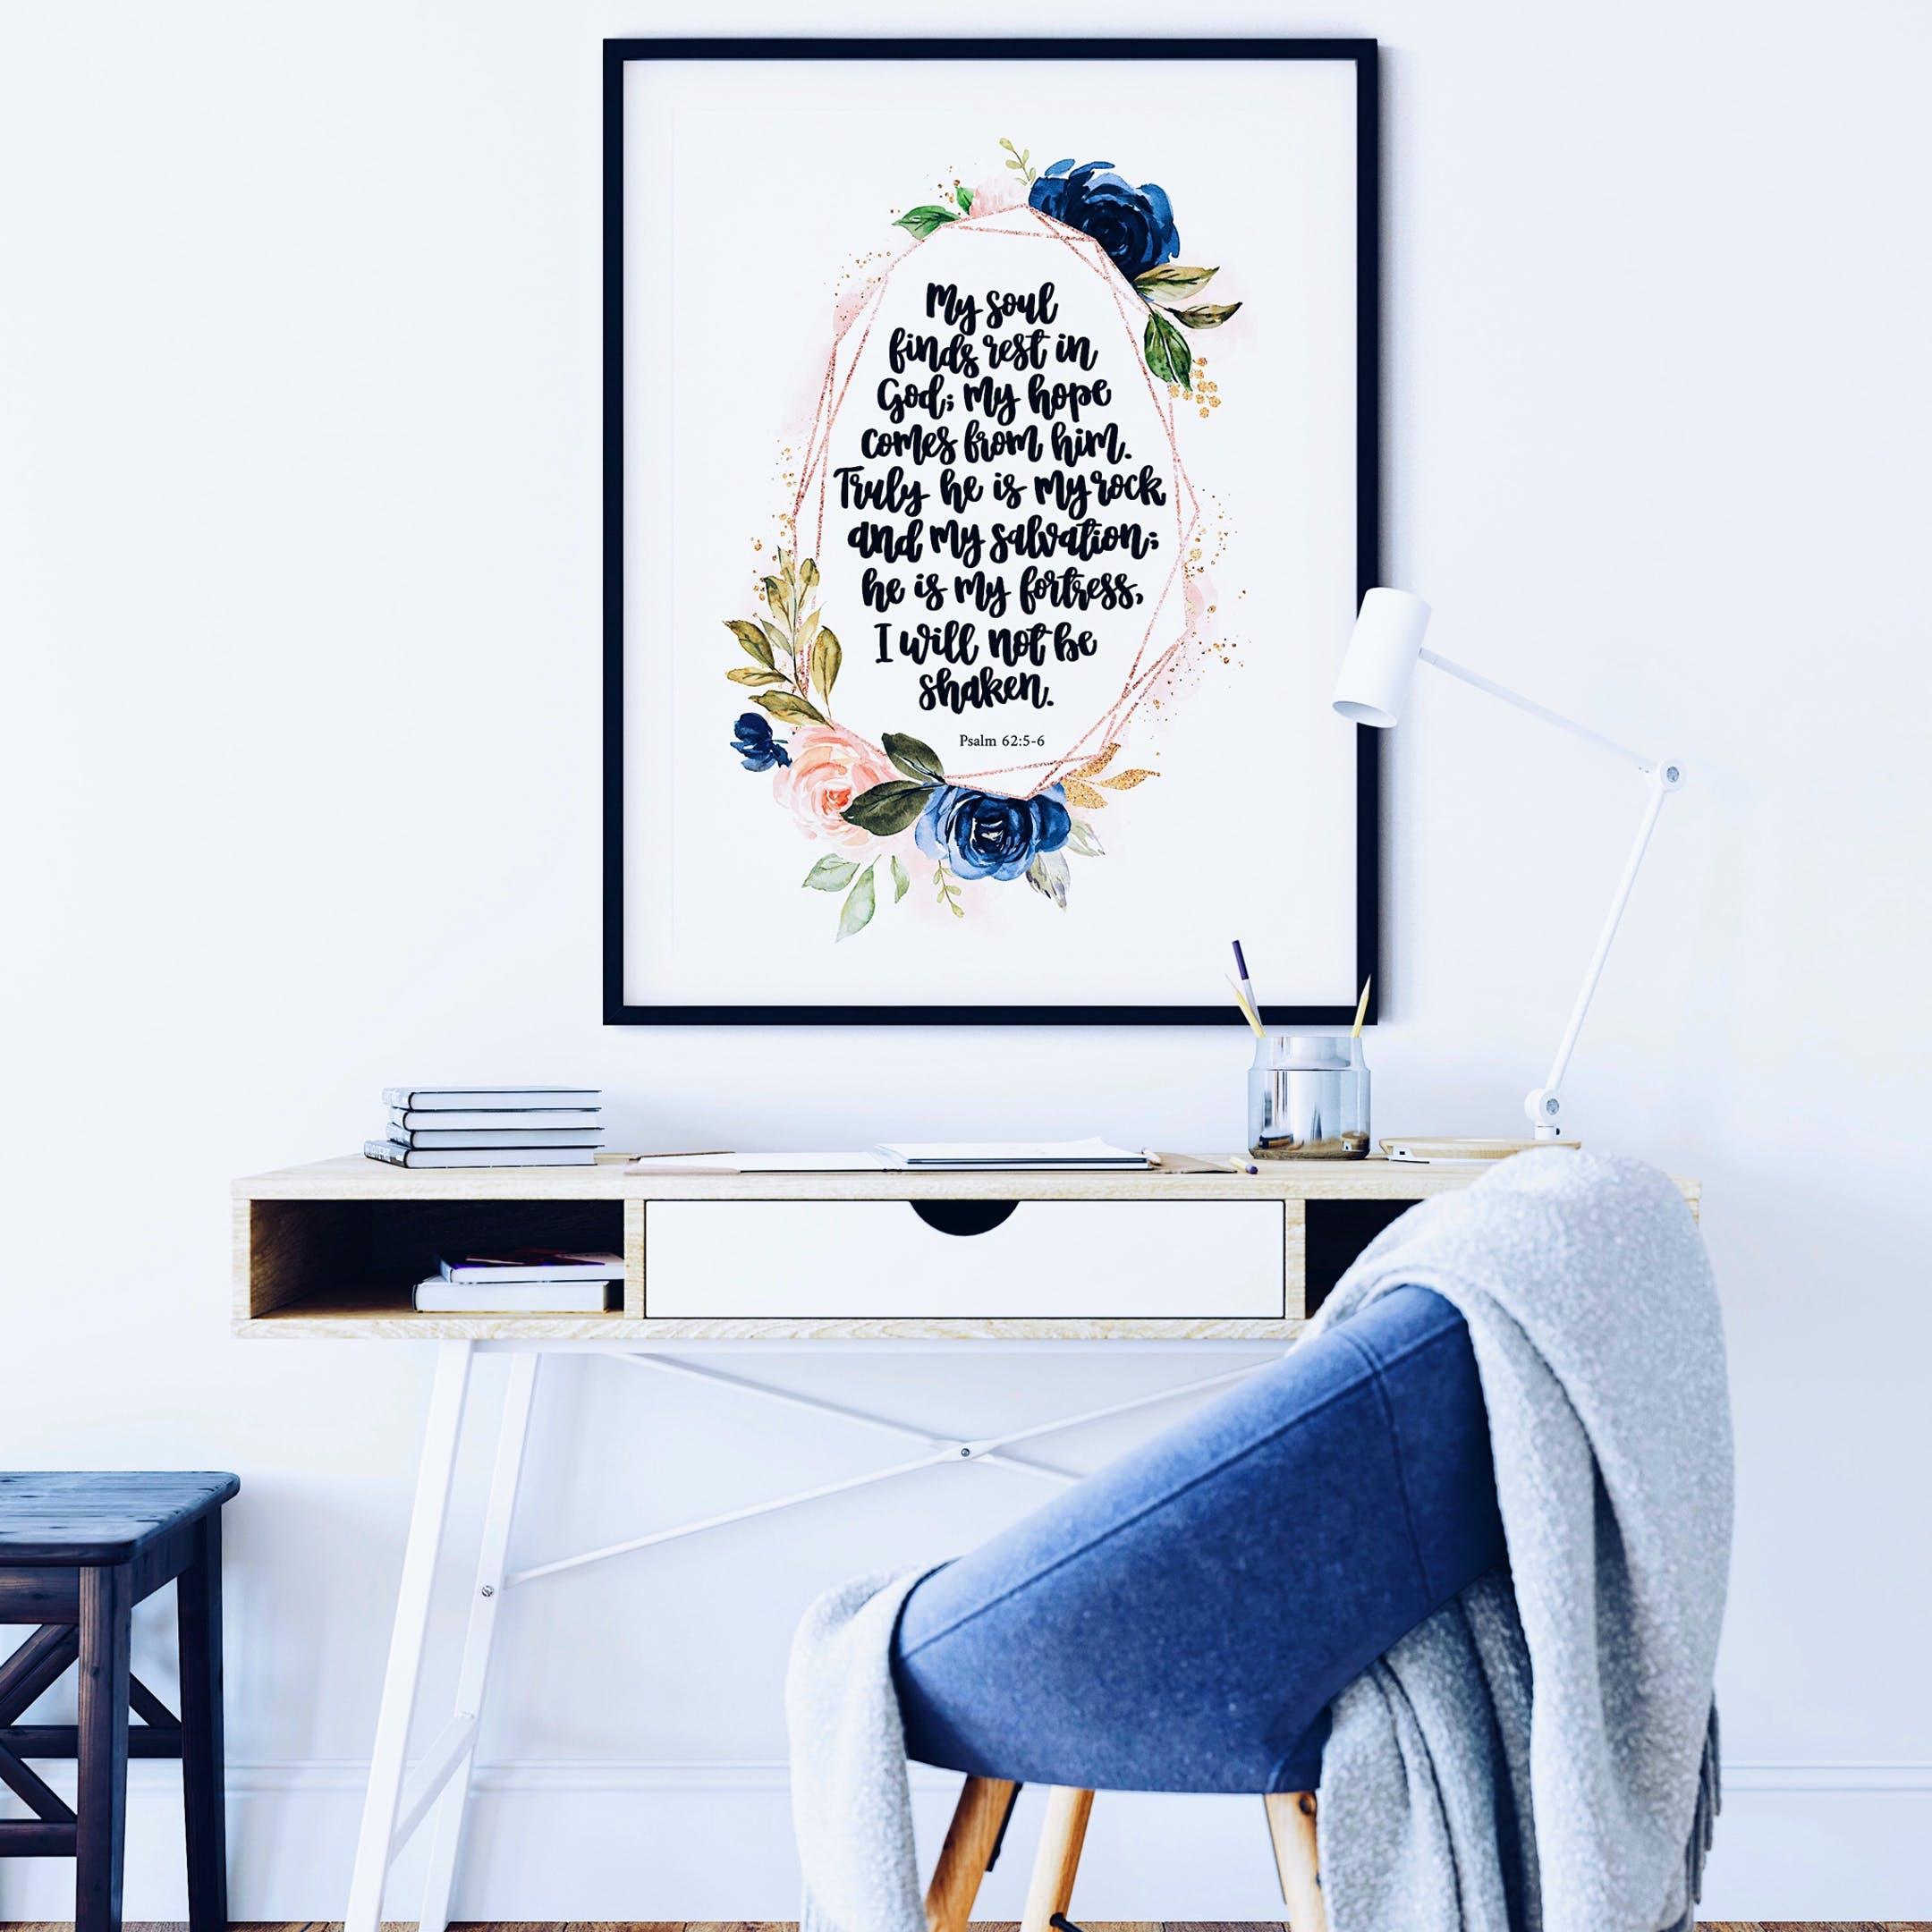 Psalm 62:5-6 Rose Gold Print - My Soul Finds Rest In God; My Hope Comes From Him - Izzy & Pop